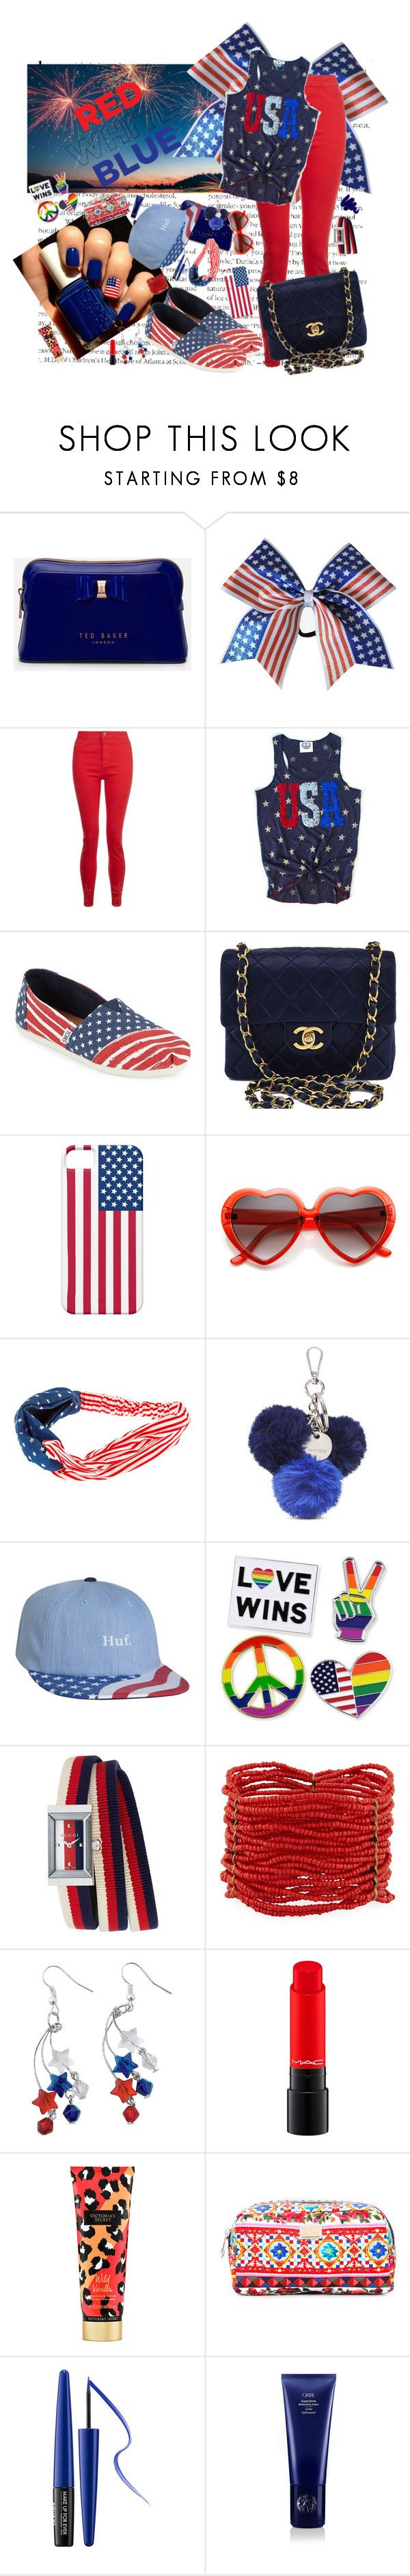 """It's a party in the USA! Happy fourth of July!"" by staystrong-believe ❤ liked on Polyvore featuring Ted Baker, TOMS, Chanel, Nine West, HUF, Gucci, Berry, Victoria's Secret, Dolce&Gabbana and MAKE UP FOR EVER"